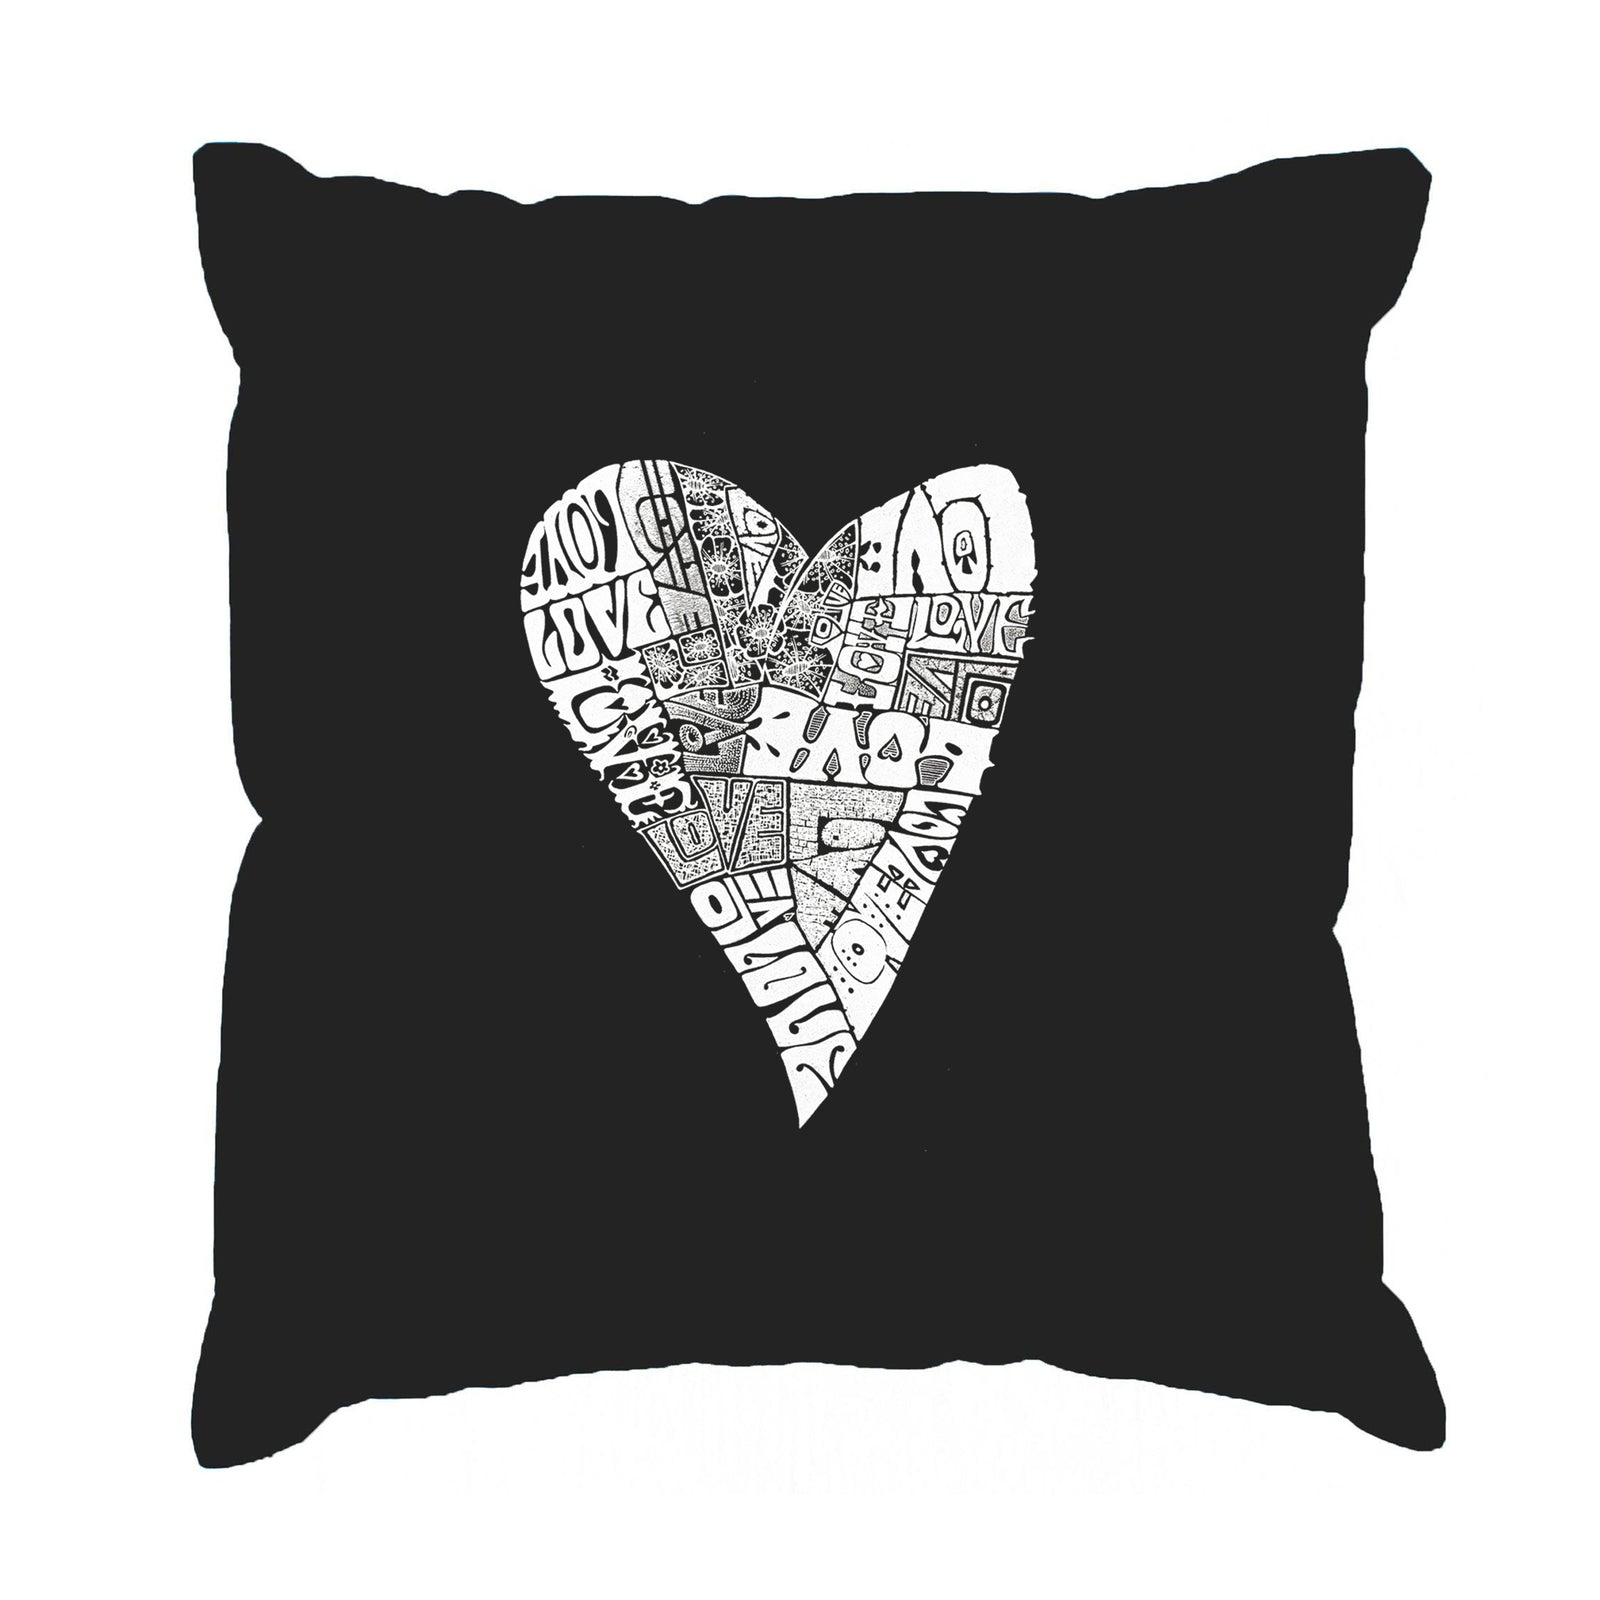 Throw Pillow Cover - Lots of Love